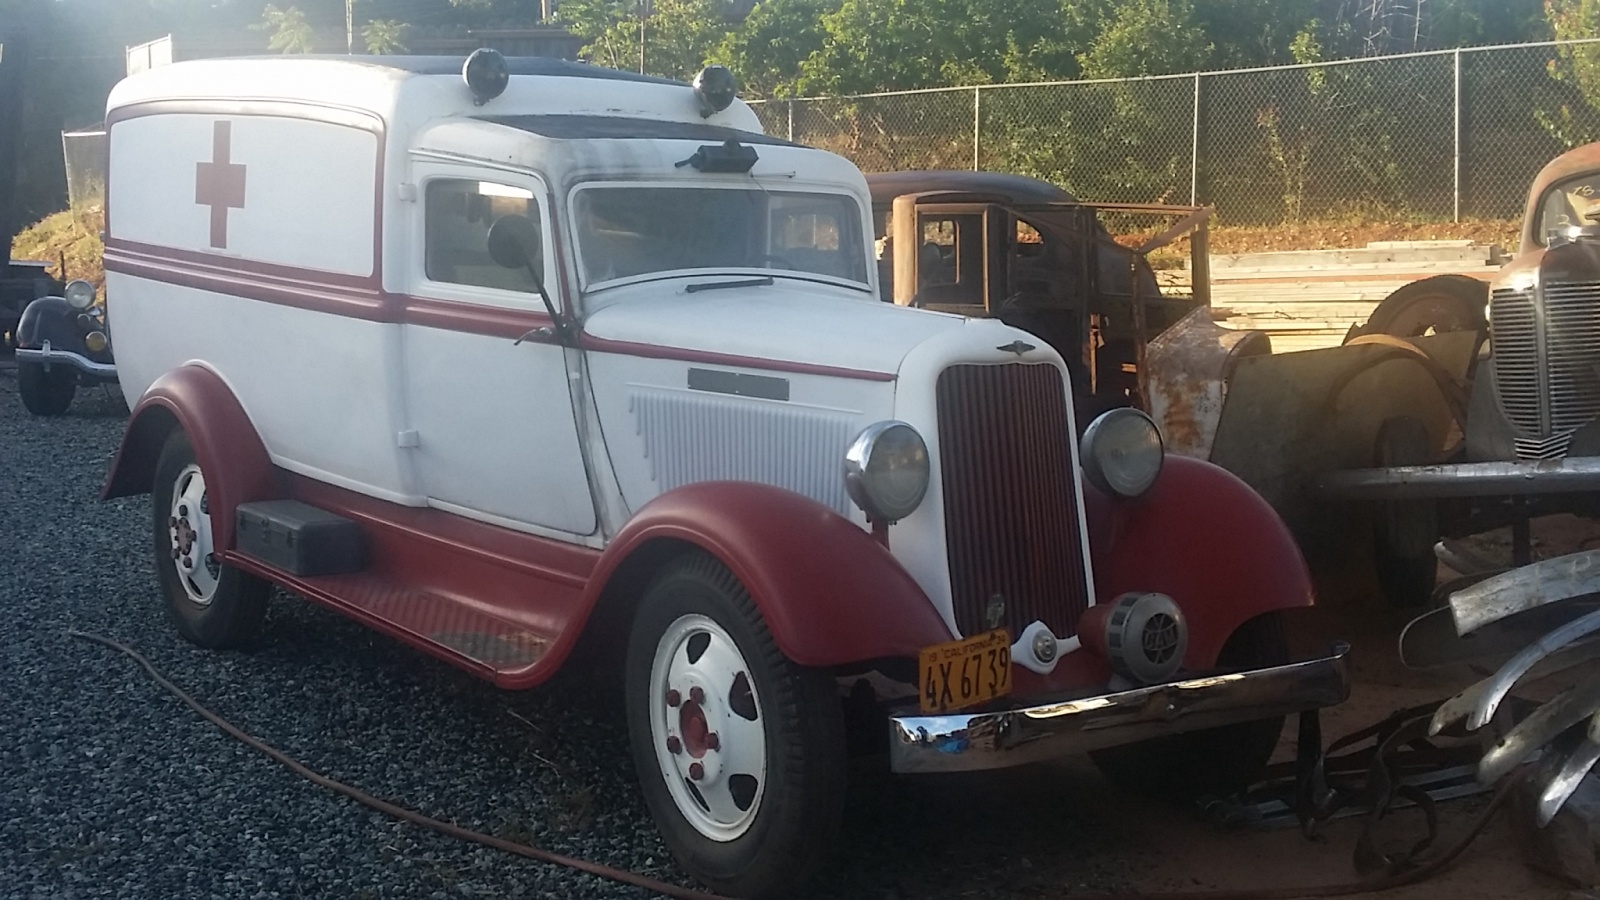 1937 Chevy Coupe For Sale On Craigslist >> 1936 Chevy Sedan Delivery For Sale On Craigslist | Autos Post